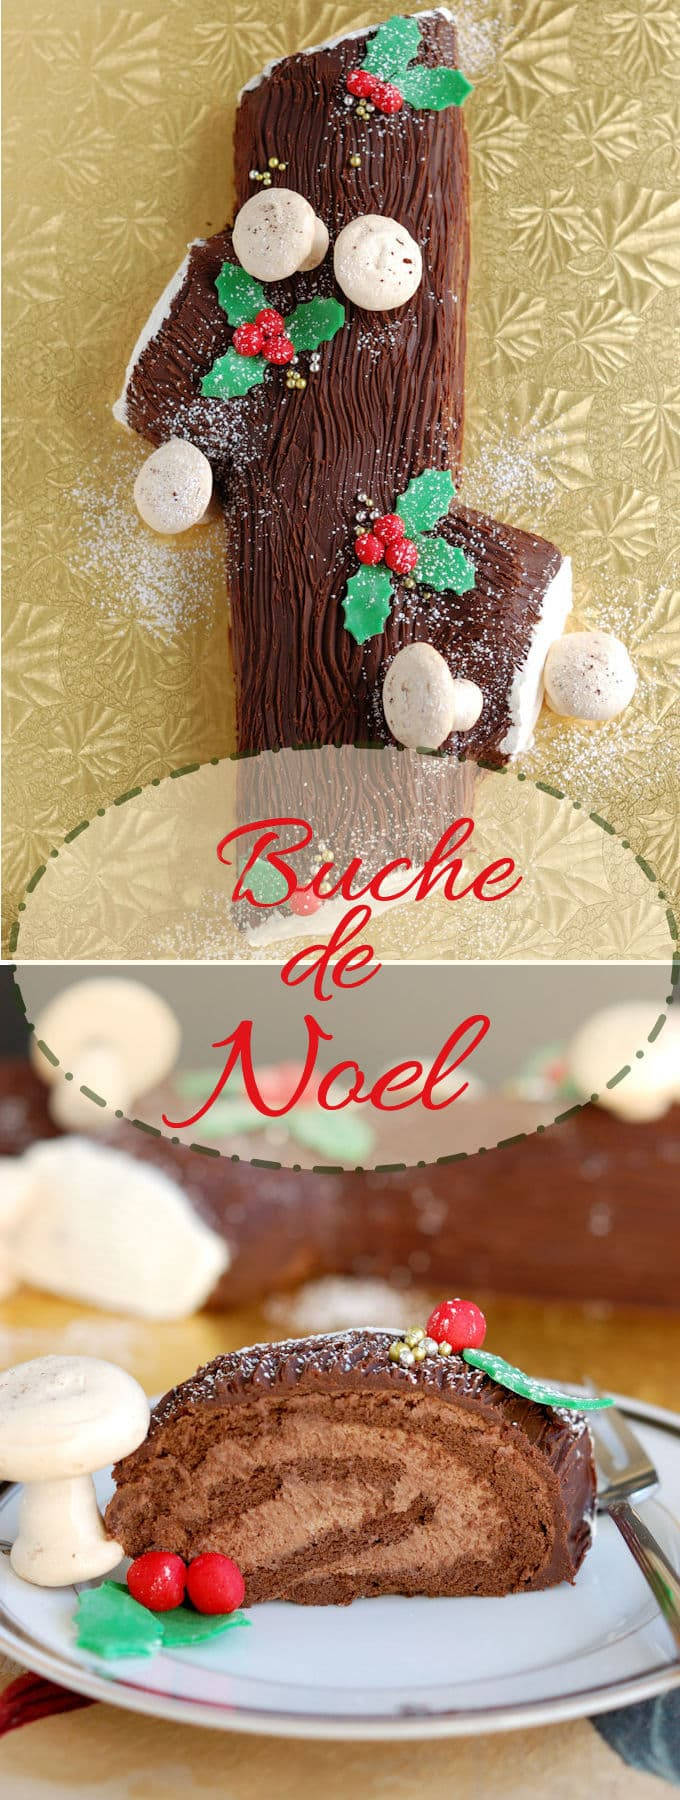 Buche de Noel, or Yule Log Cake, makes a spectacular centerpiece for your Christmas dinner table. Get the recipe and see detailed how-to photos.